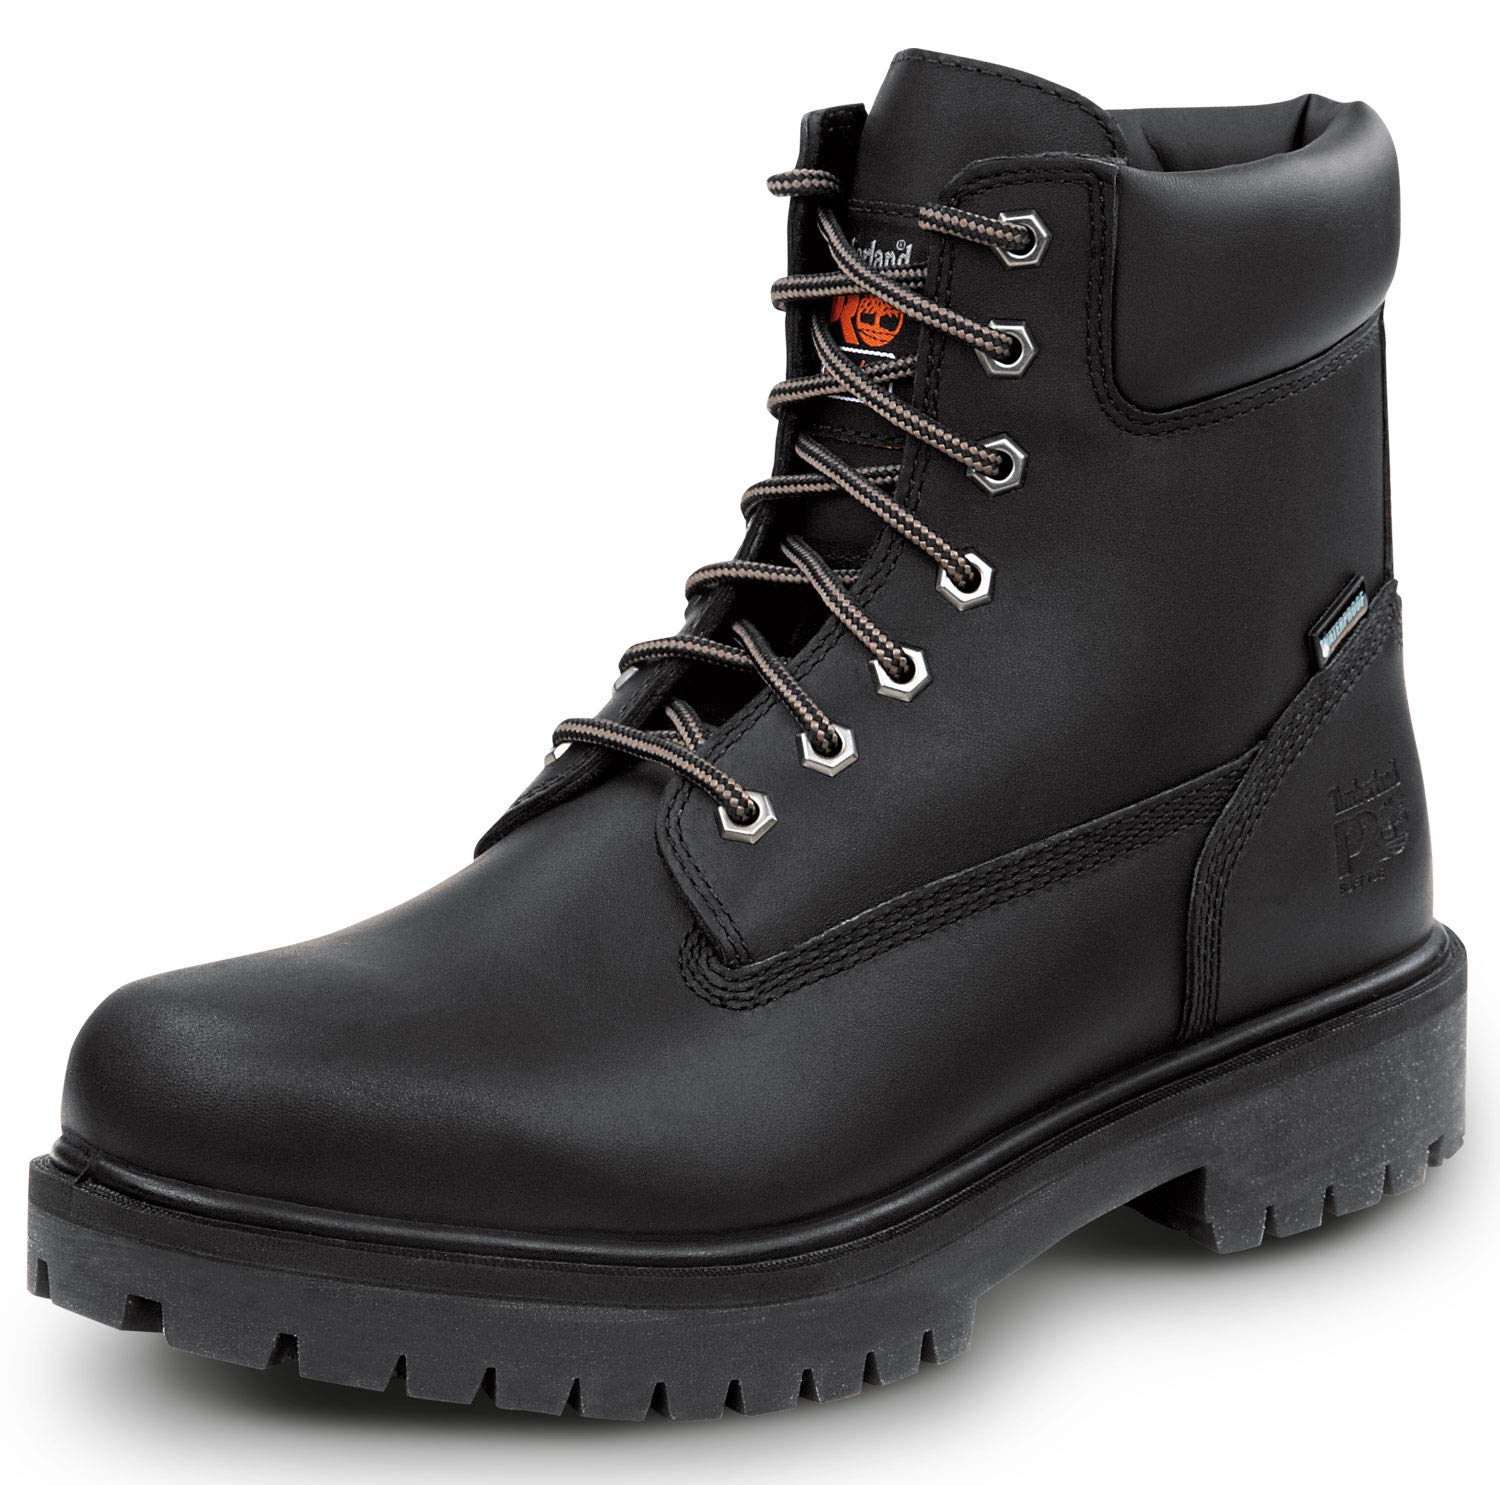 Timberland PRO 6-inch Direct Attach Men's Soft Toe Boot (14.0 M) Black by Timberland PRO